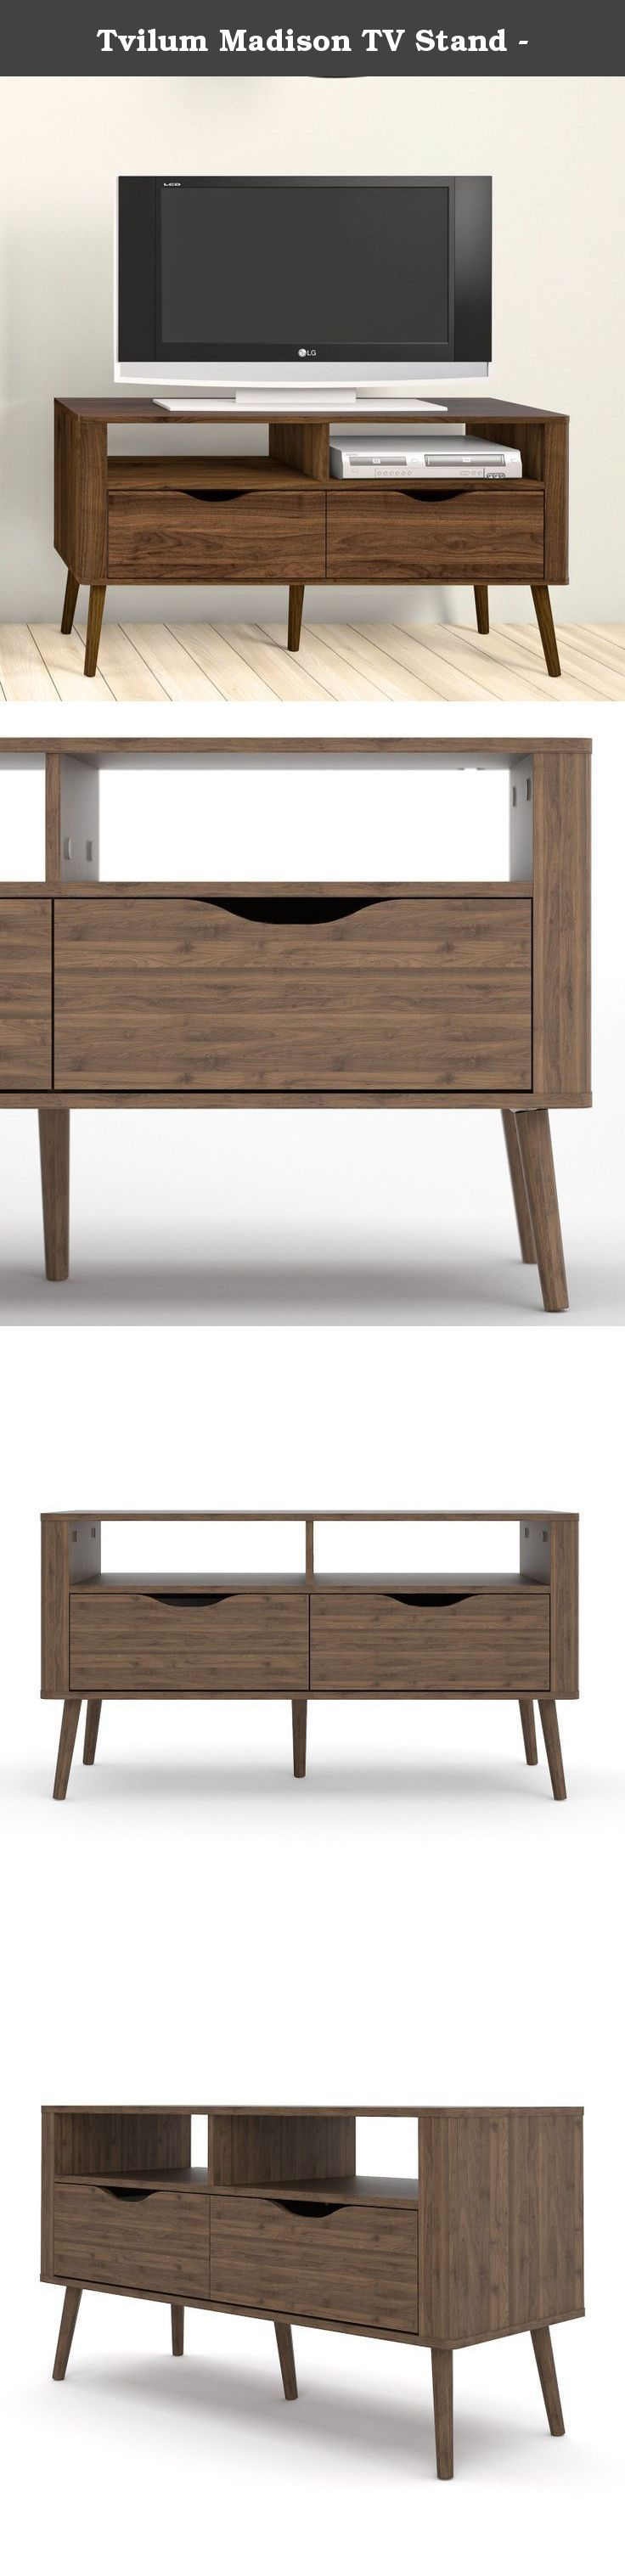 Tvilum Madison TV Stand -. Scandinavian style is lauded for its combination of clean-lined style and functional design, and the Tvilum Madison TV Stand - Oak is no exception. Two drawers with cut-out, handle-free drawers combine with two fixed, open shelves to provide smart storage for consoles, remotes, media, and more. The TV stand is crafted of environmentally friendly engineered wood in a rich walnut finish. Fine craftsmanship abounds, too, from the soft-close drawers to their metal...